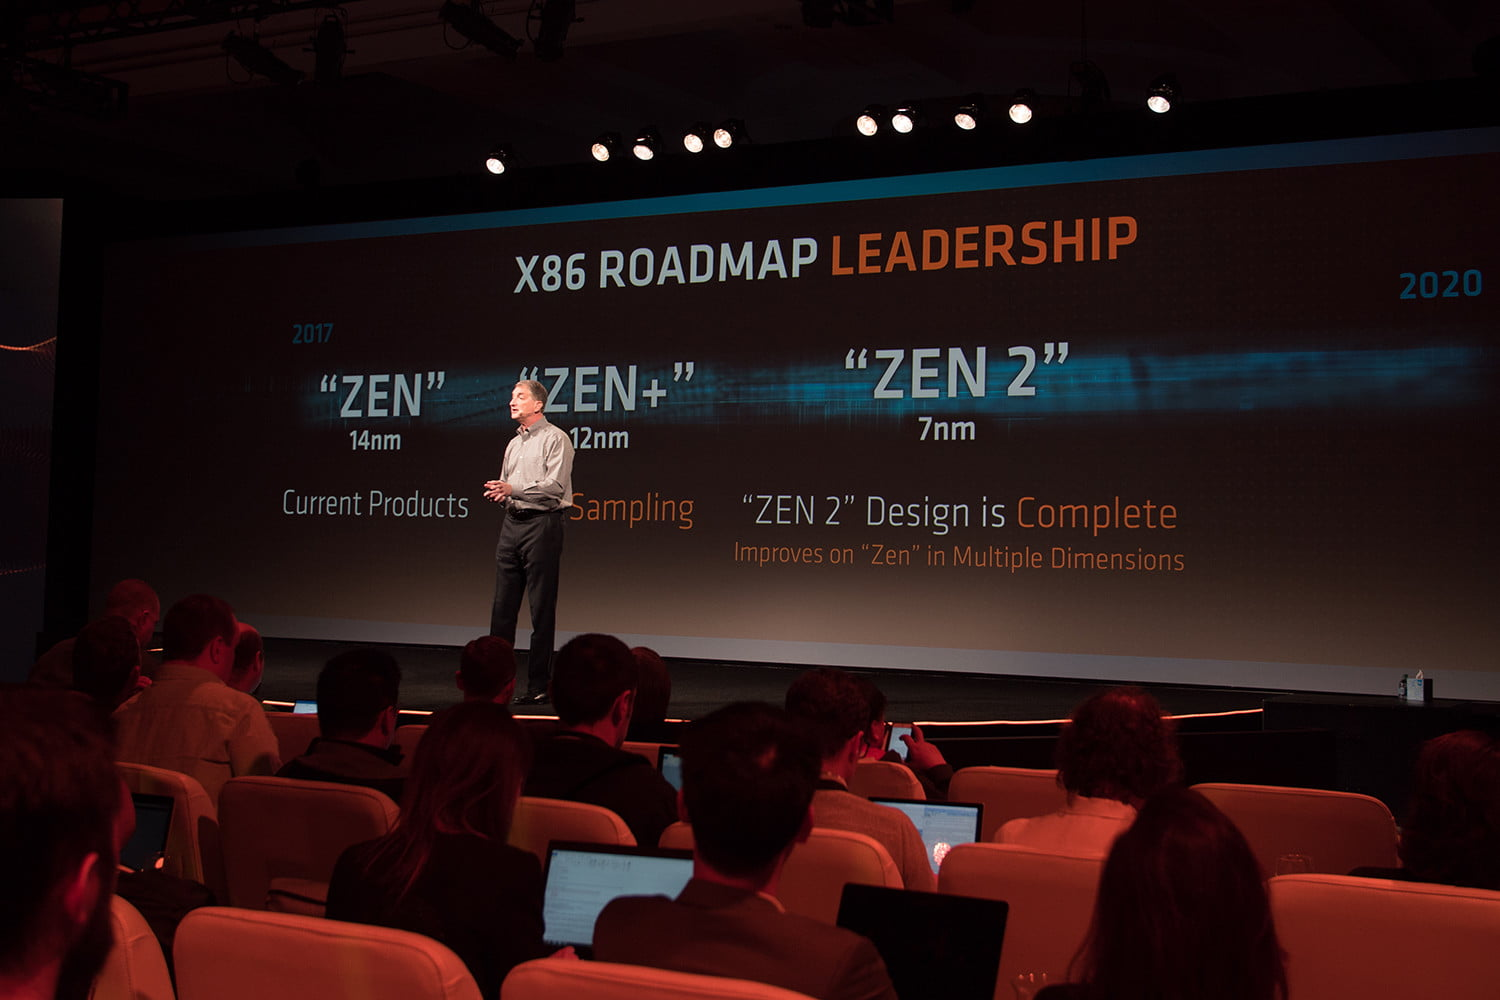 amd second gen ryzen news ces 2018 x86 roadmap zen